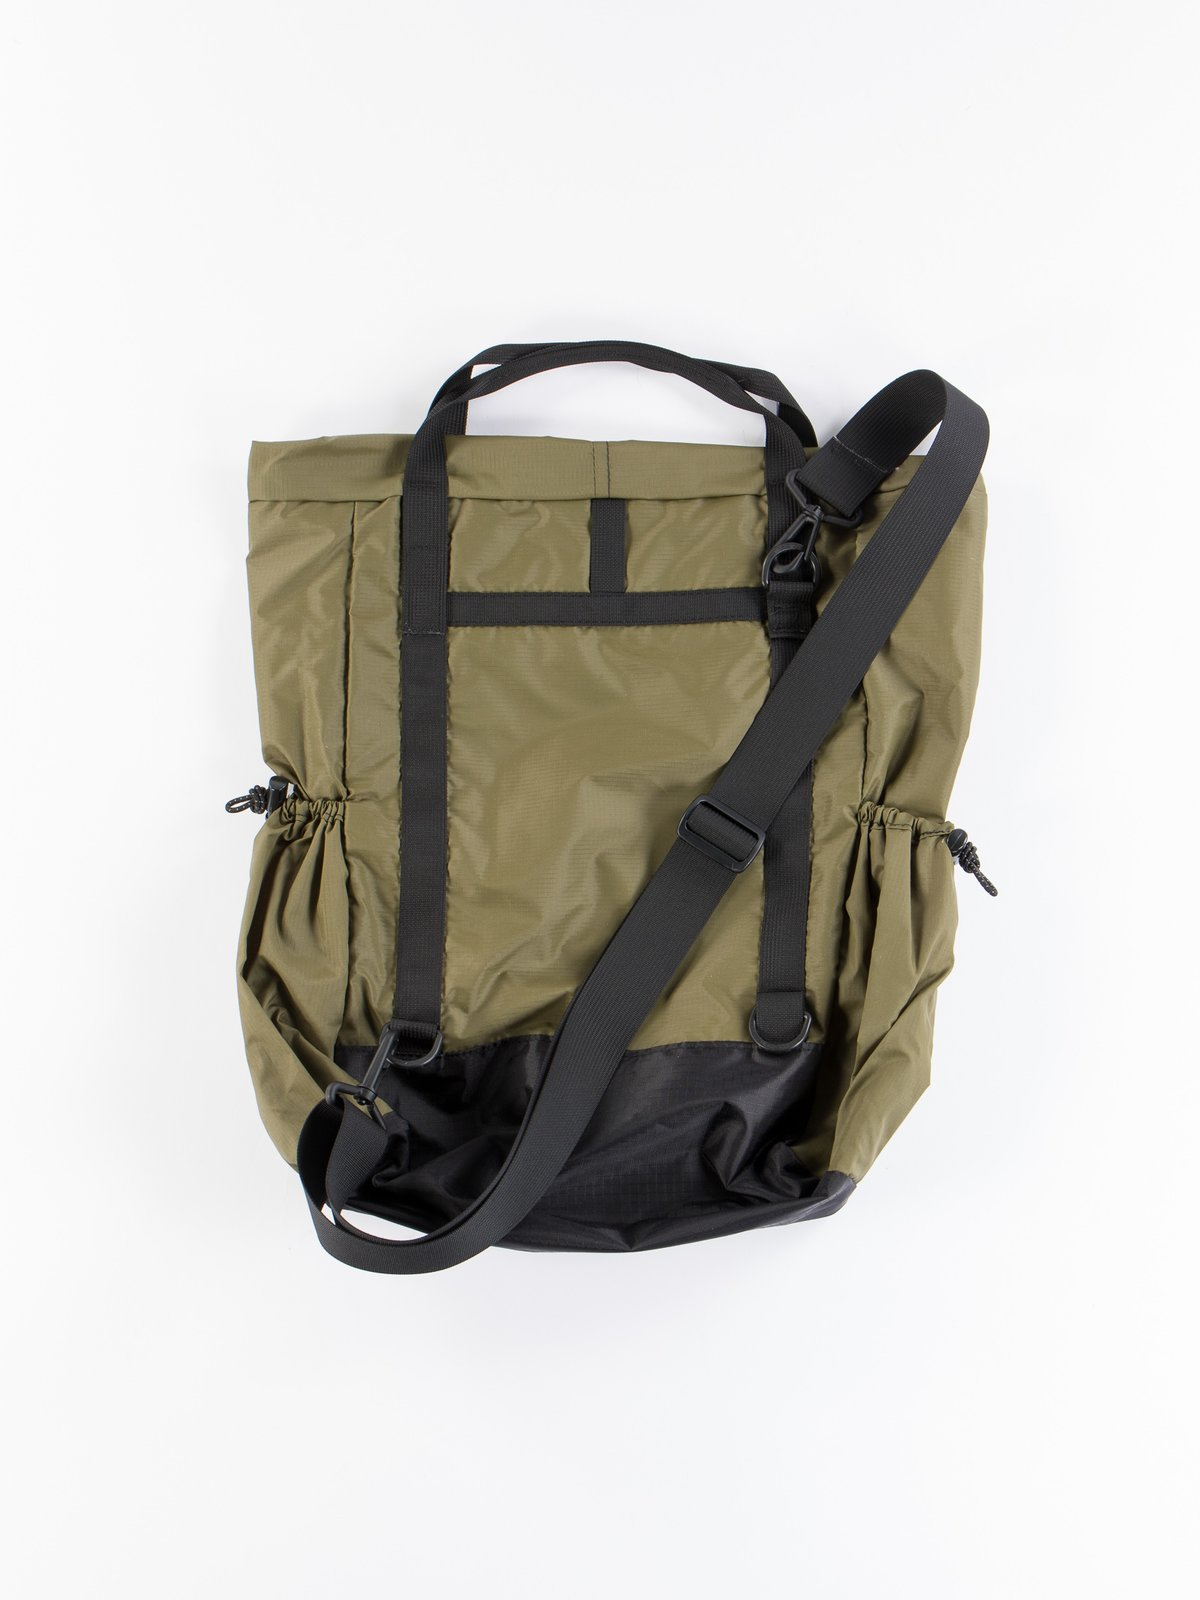 Olive Nylon Ripstop UL 3 Way Bag - Image 3